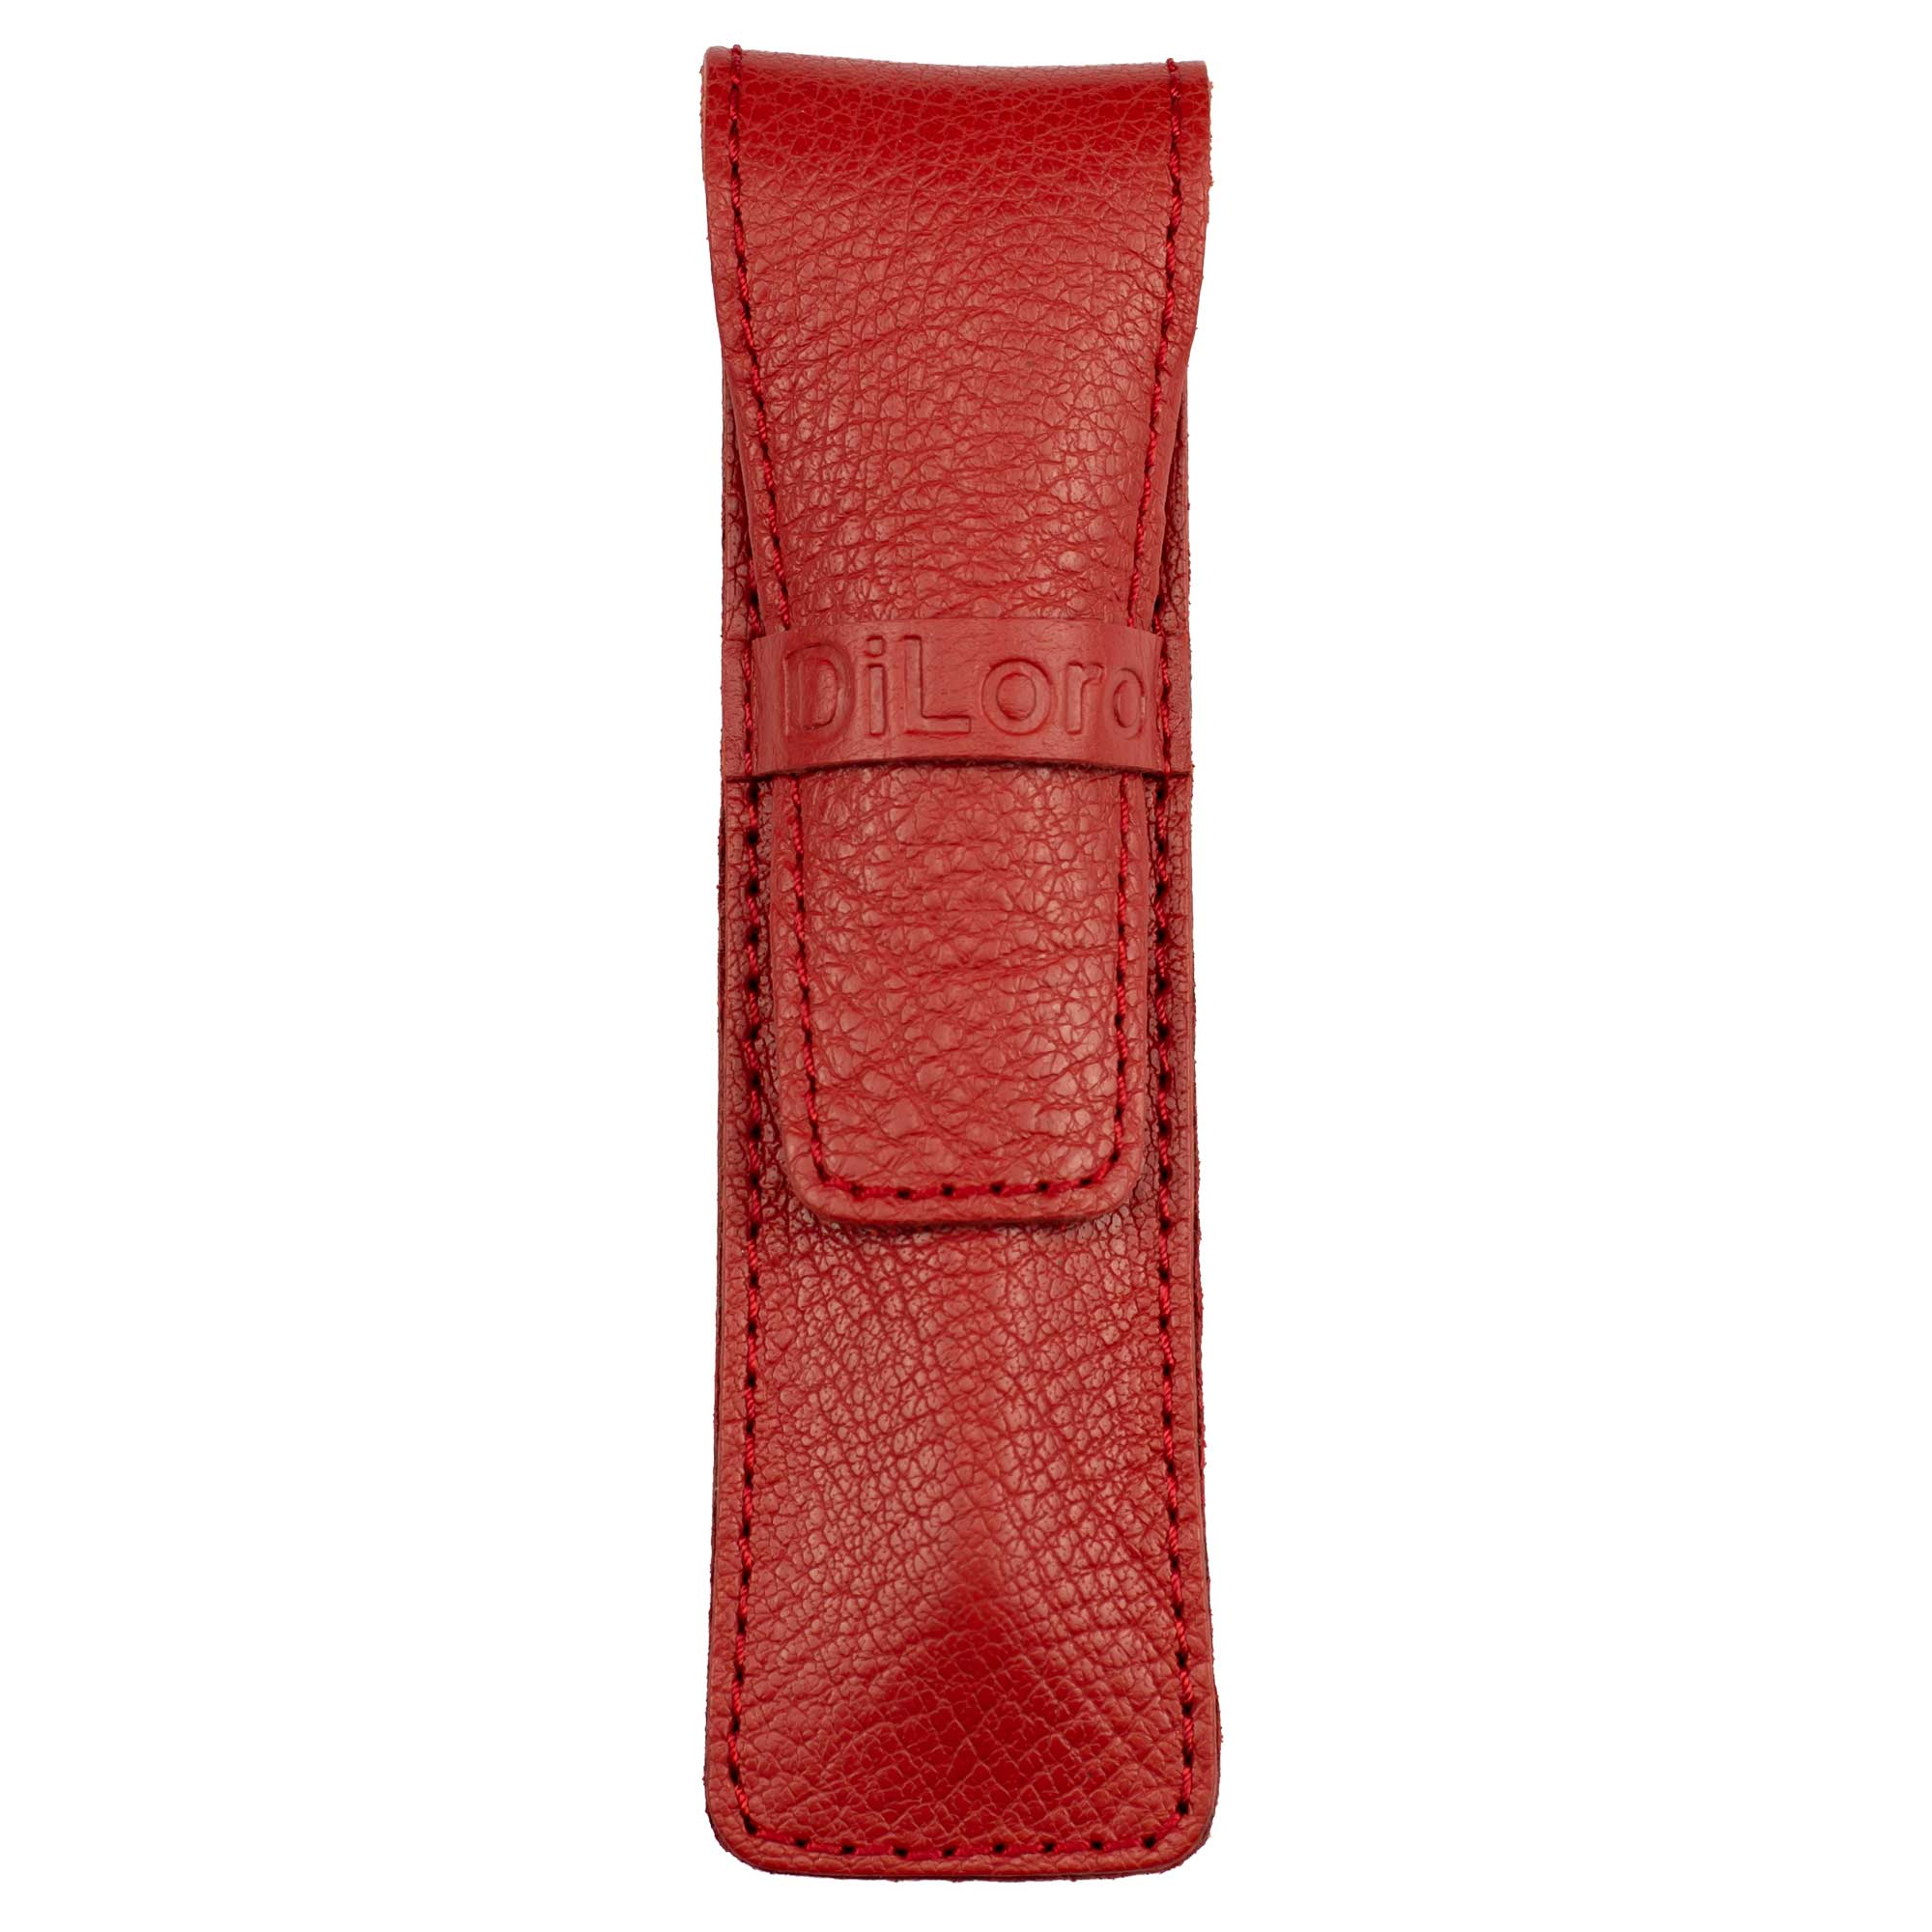 DiLoro Single Leather Pen Holder in Venetian Red, Full Grain Leather